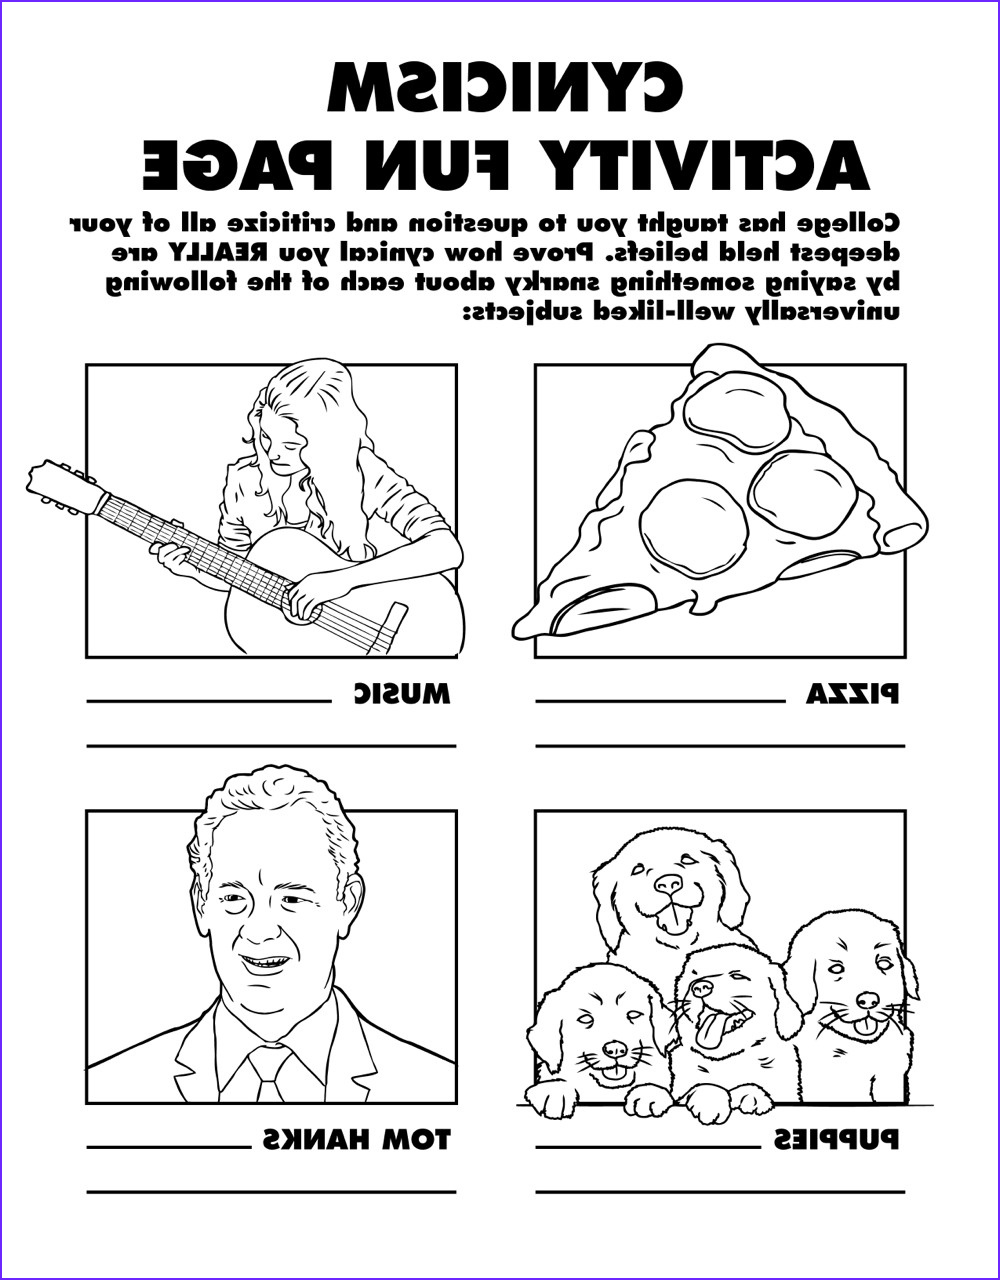 Coloring Pages for Grown Ups Unique Image 38 Pages From the 'coloring for Grown Ups' Activity Book